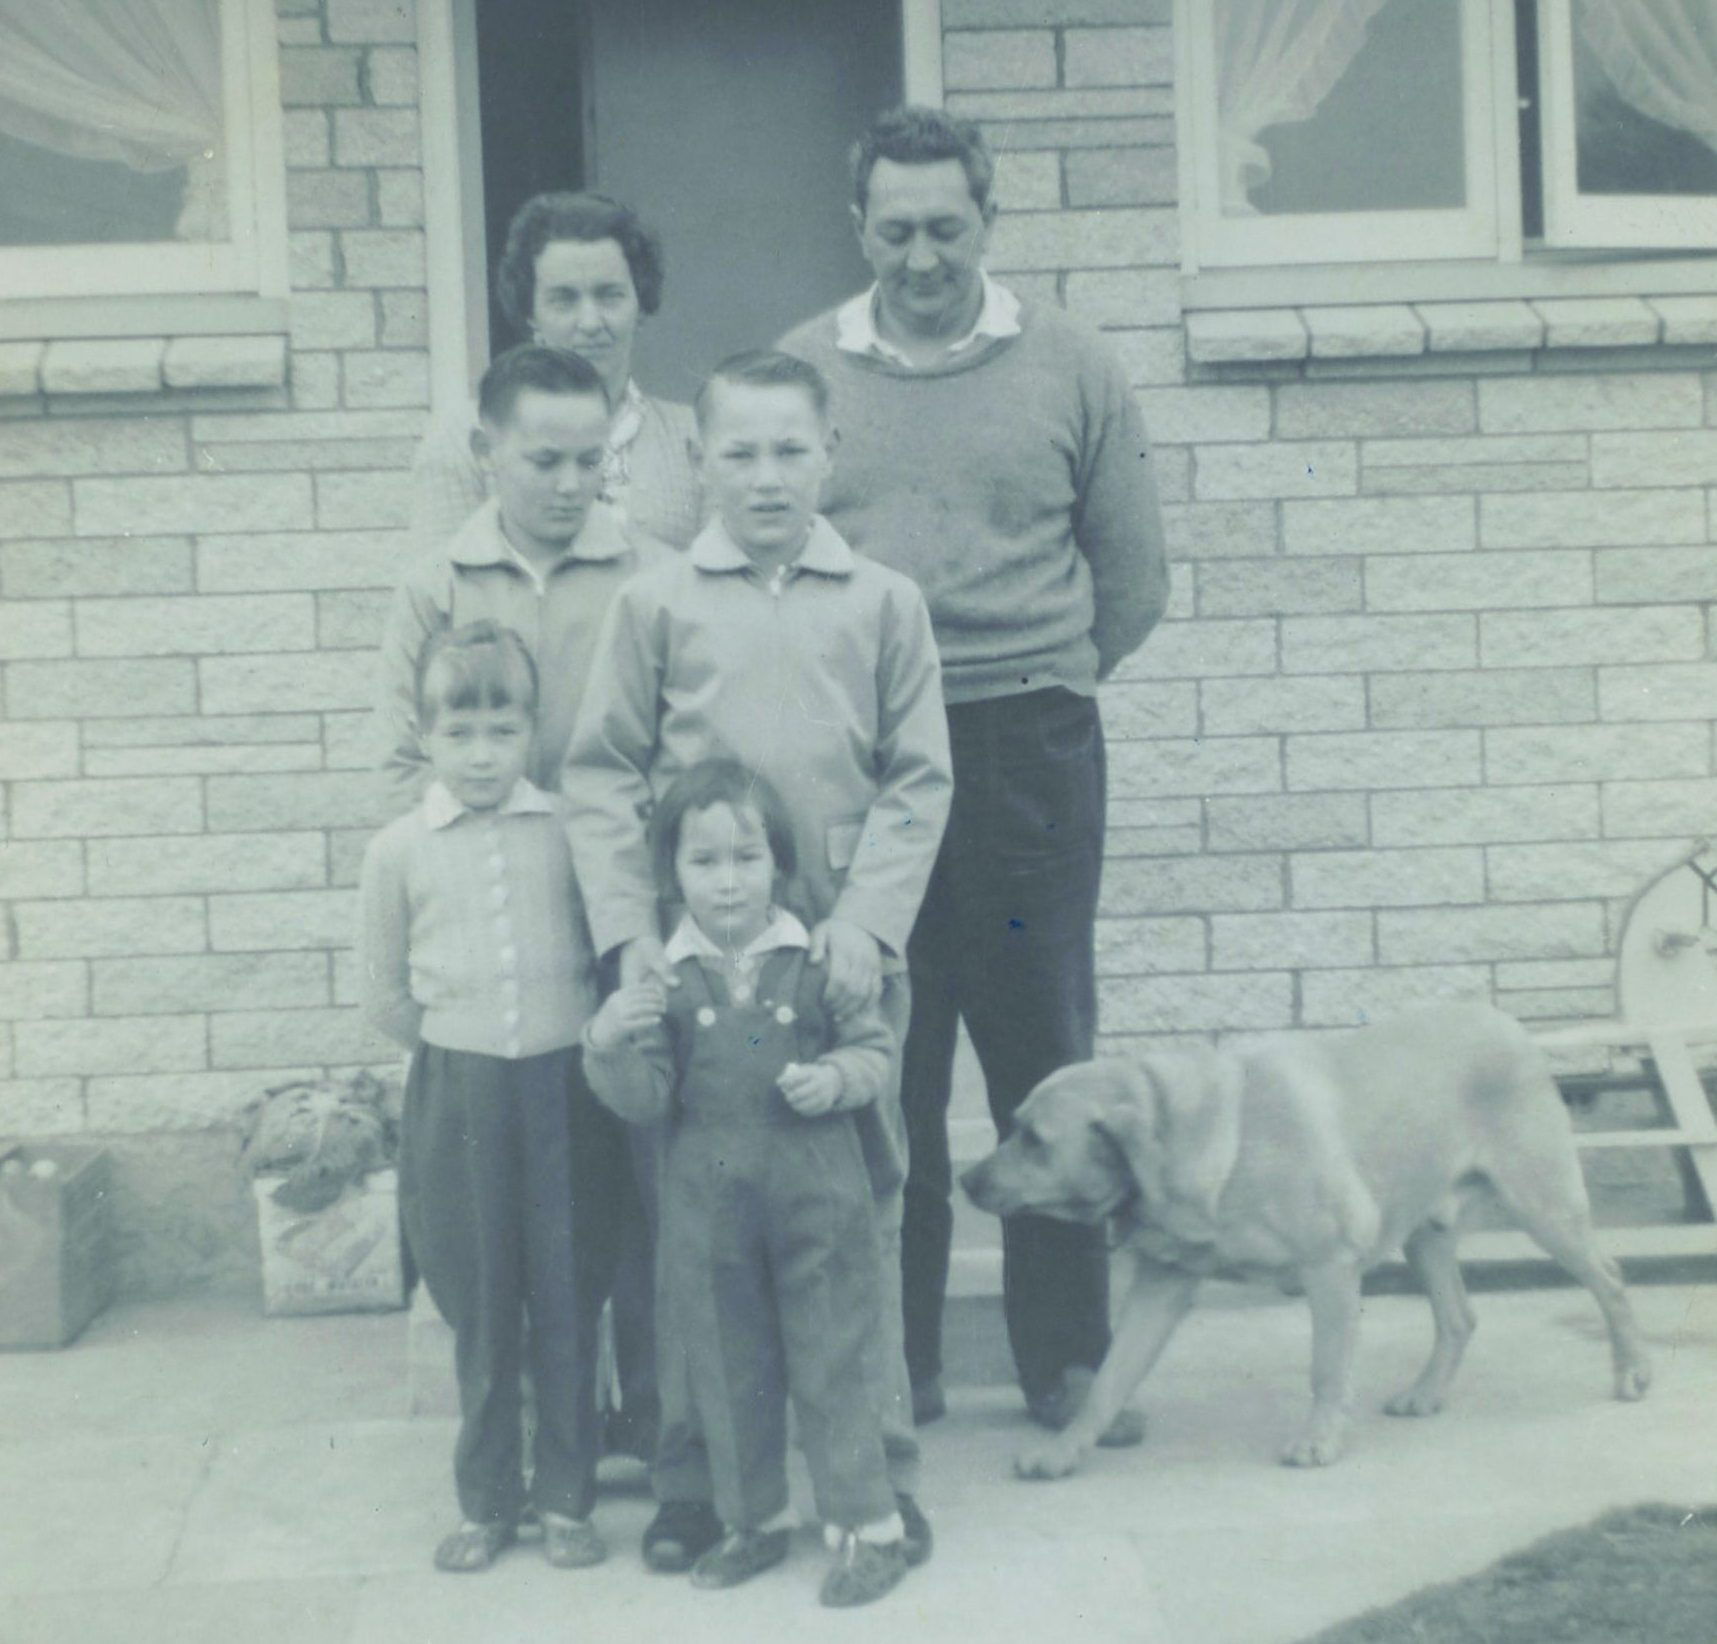 ABOVE Mark with his family at Belfast, Christchurch, in the early 1960s. From back left: Mark's mother, Nyra May, and his father, George; middle: Mark and his brother, Wayne; front: his sisters, Rana and Keri.